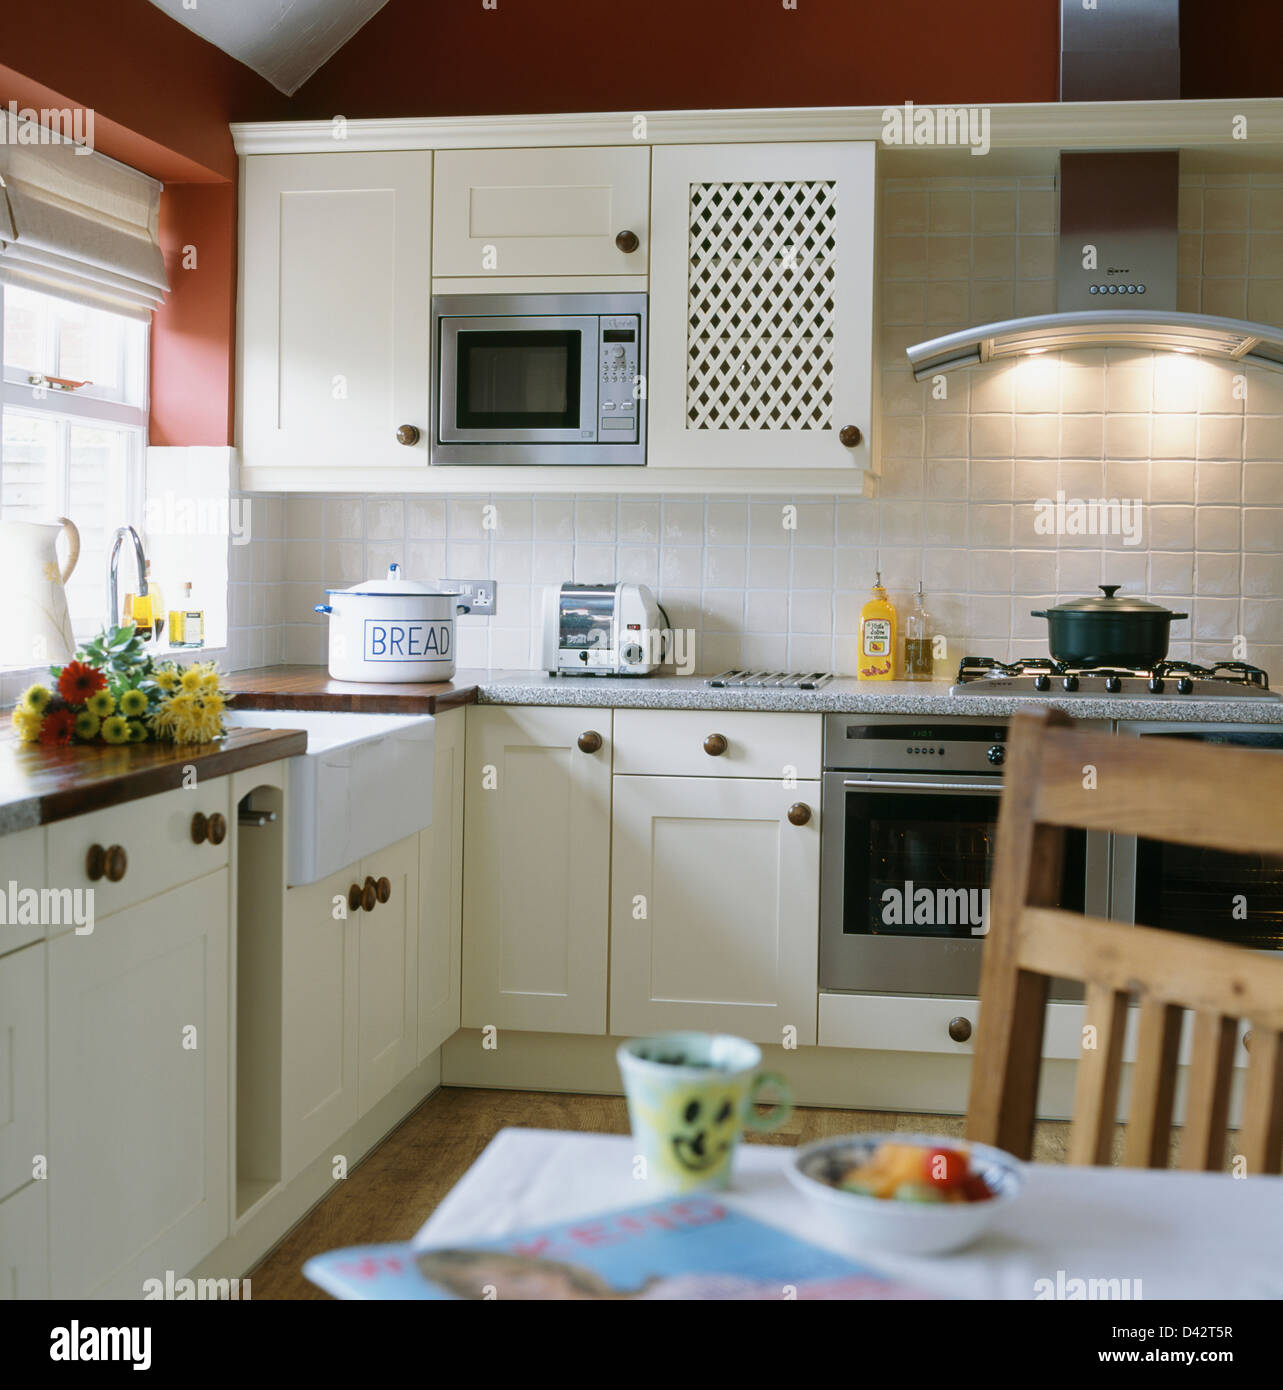 https www alamy com stock photo microwave oven fitted in wall cupboard in white cottage kitchen dining 54152611 html